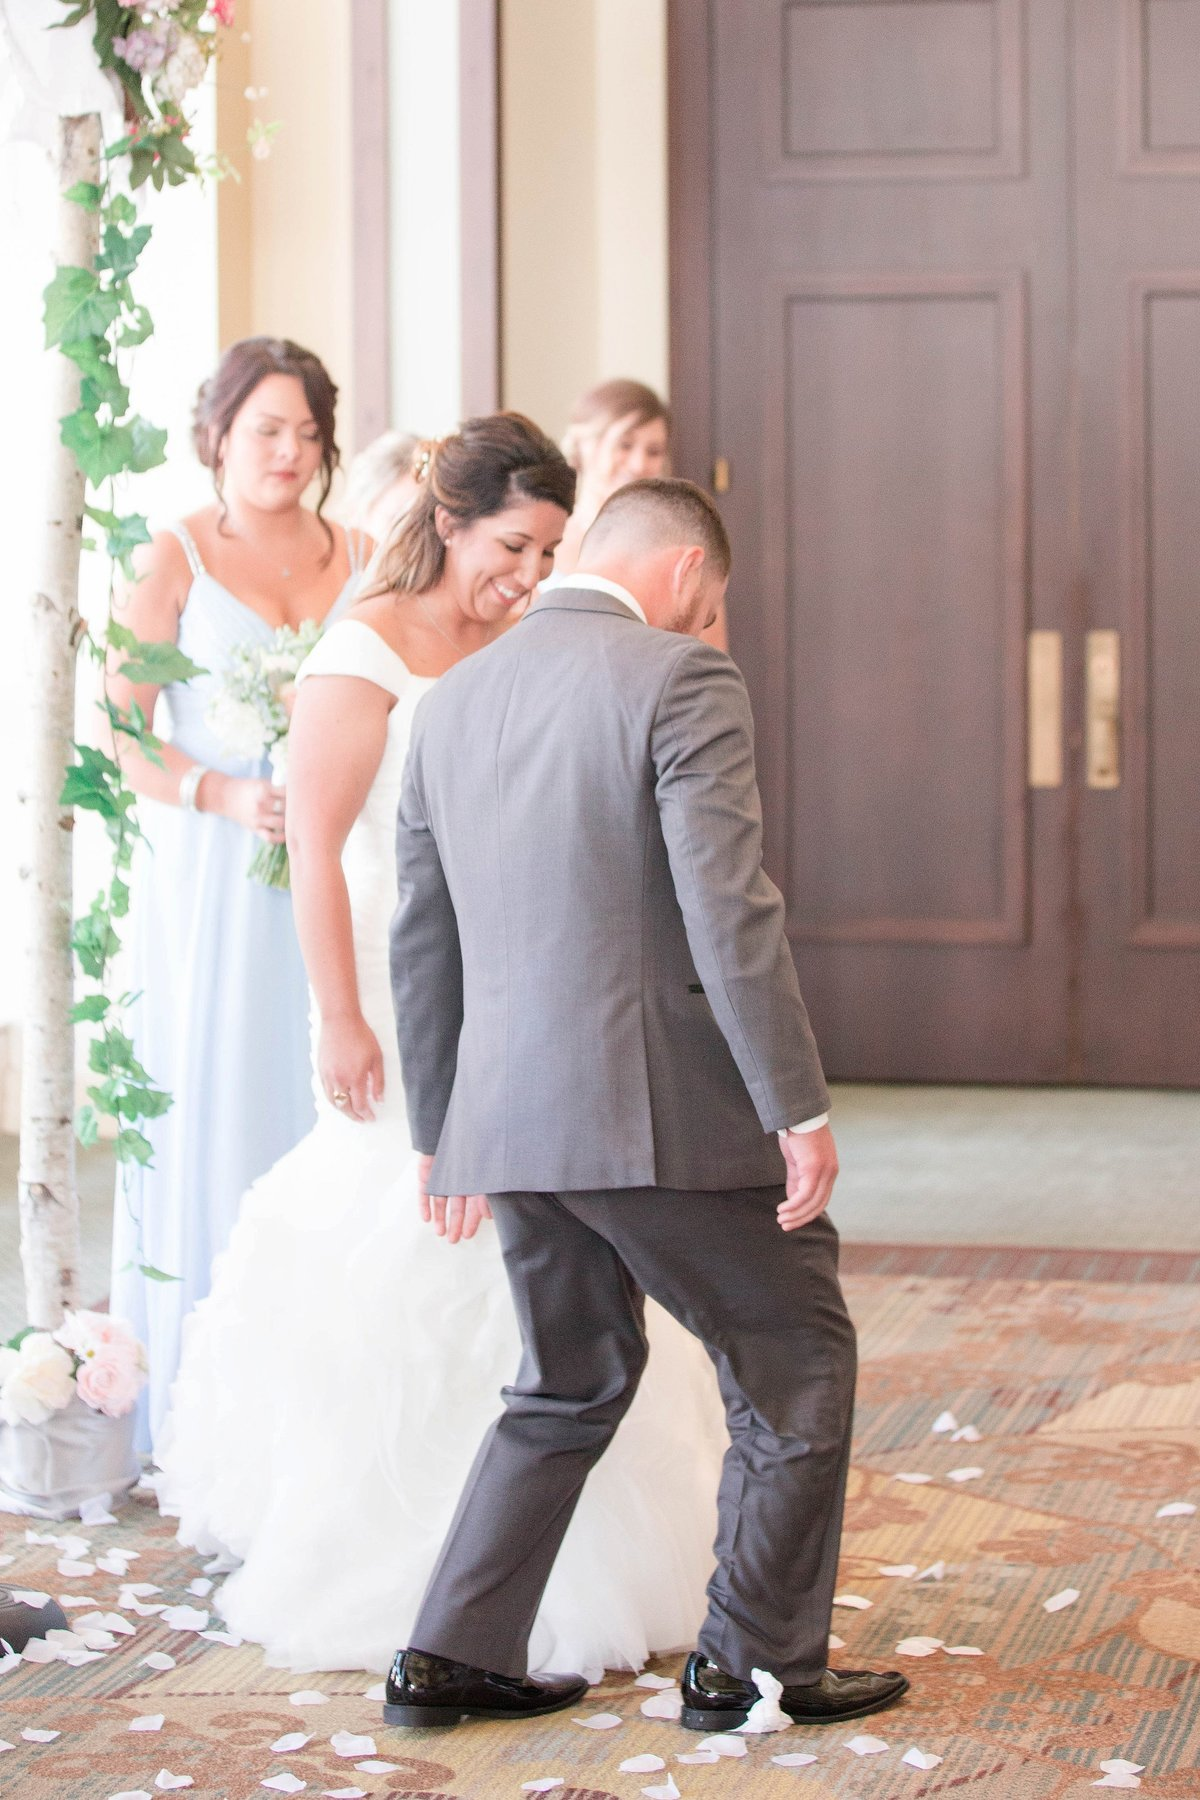 Baby Powder Blue and Blush Summer Park Inn Wedding with First Look by Toledo and Detroit Based Wedding Photographers Kent & Stephanie Photography_1023